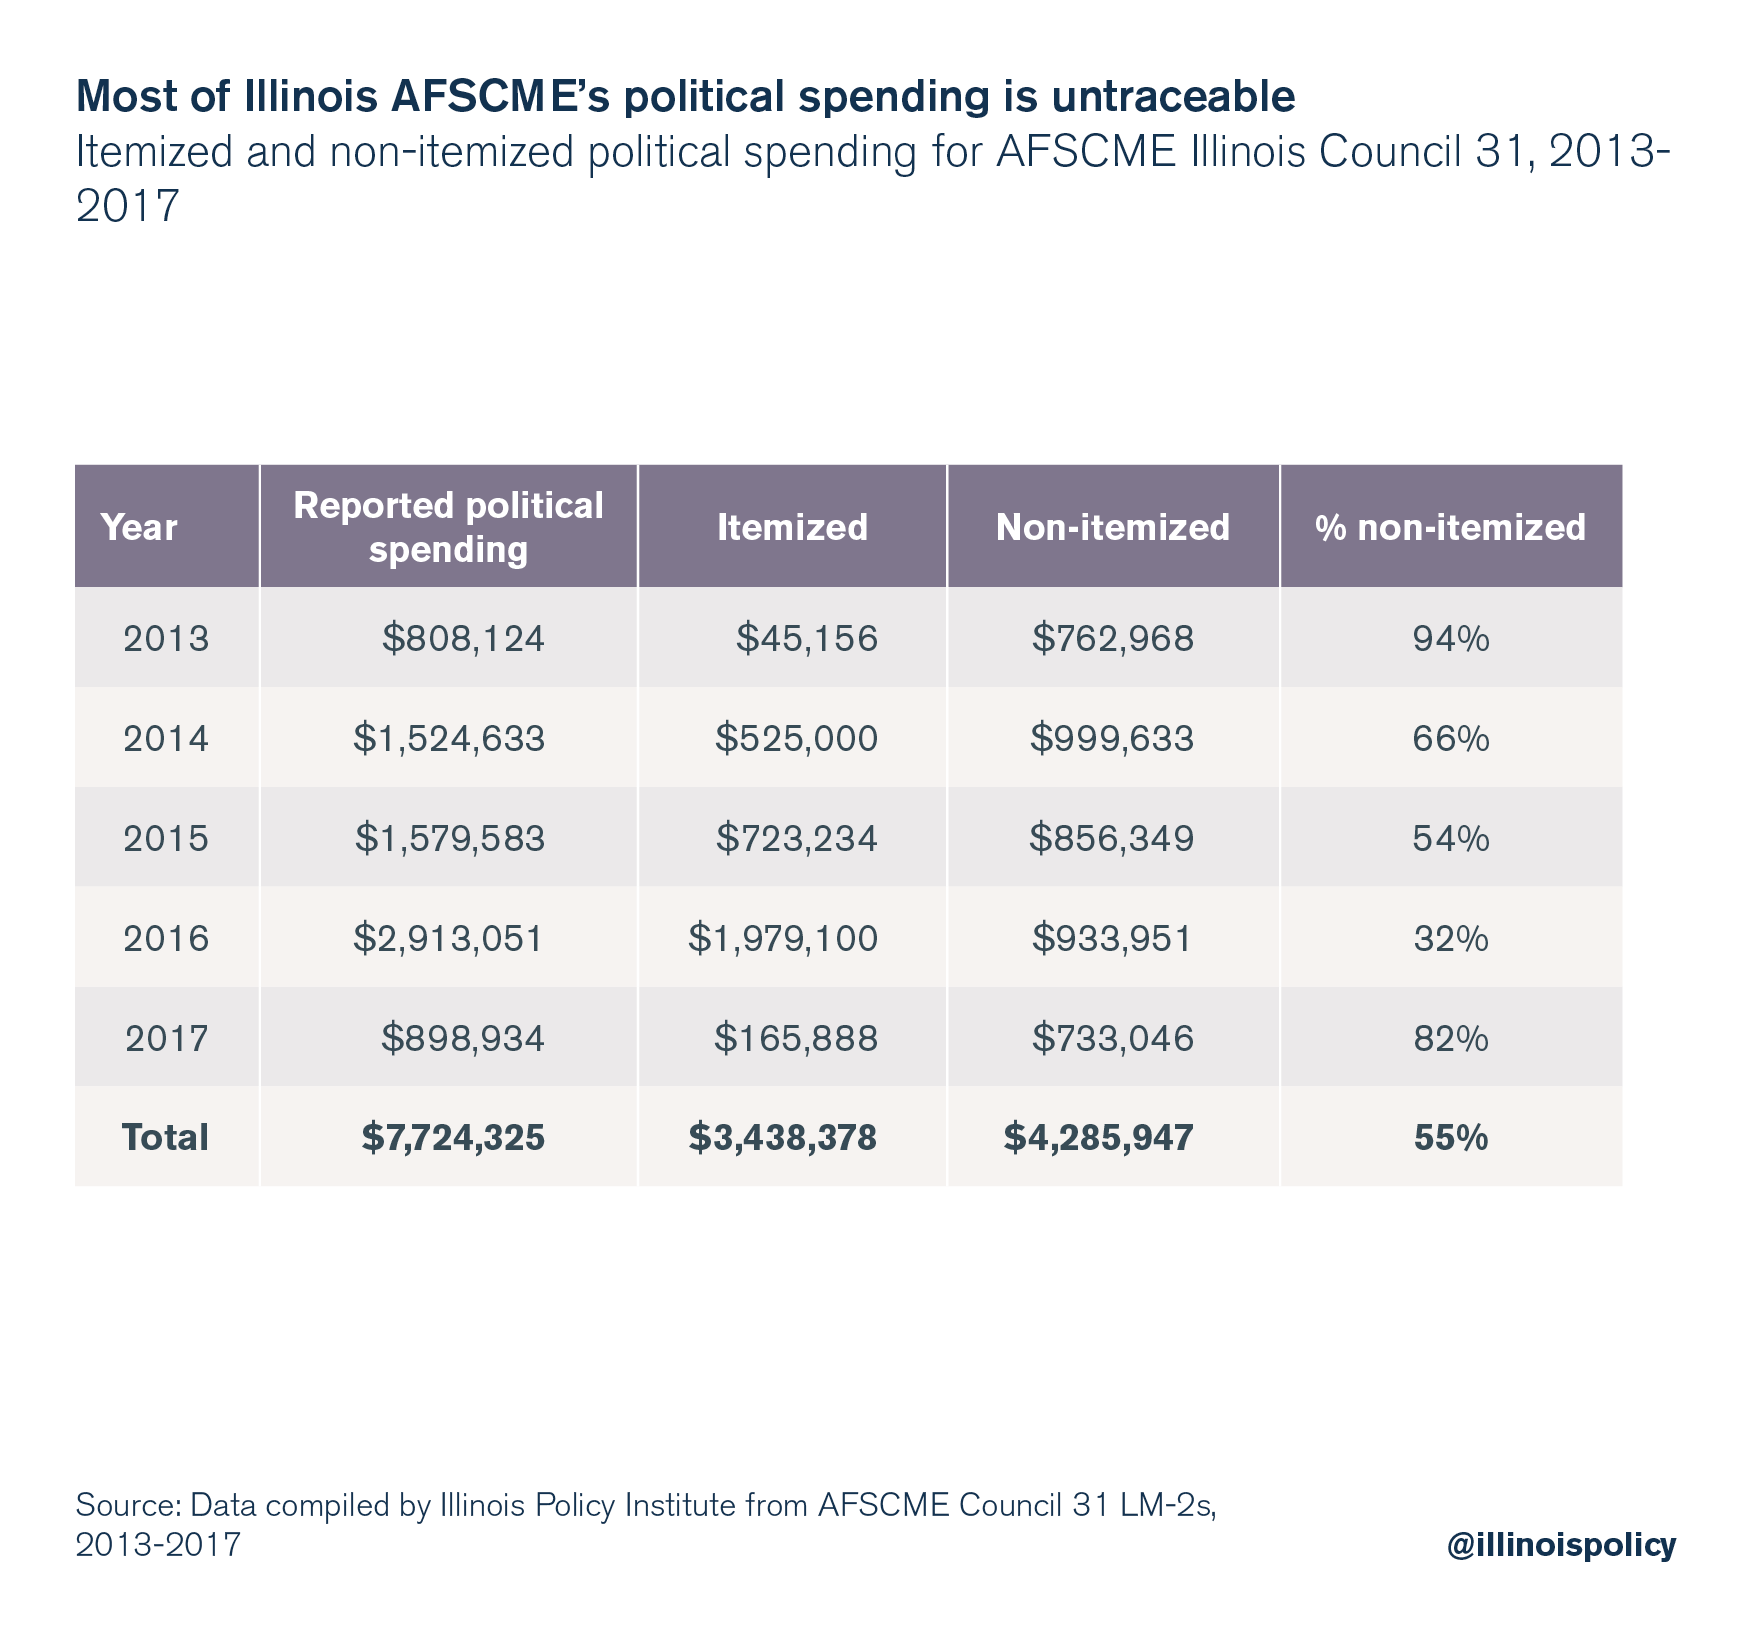 Most of Illinois AFSCME's political spending is untraceable